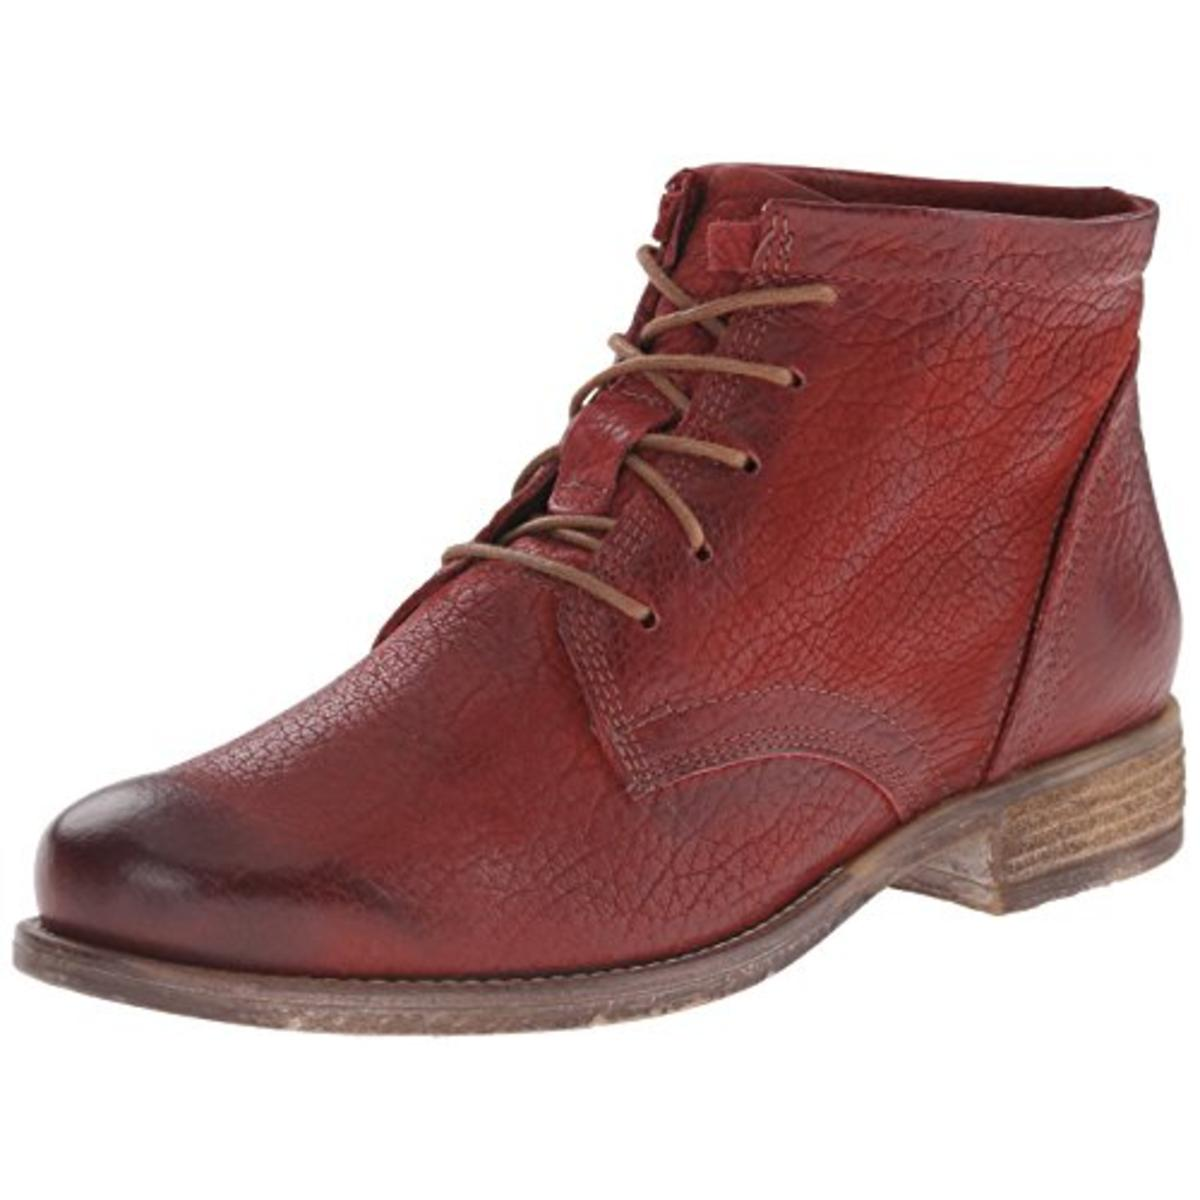 Josef Seibel Womens Sienna 03 Leather Lace Up Ankle Boots